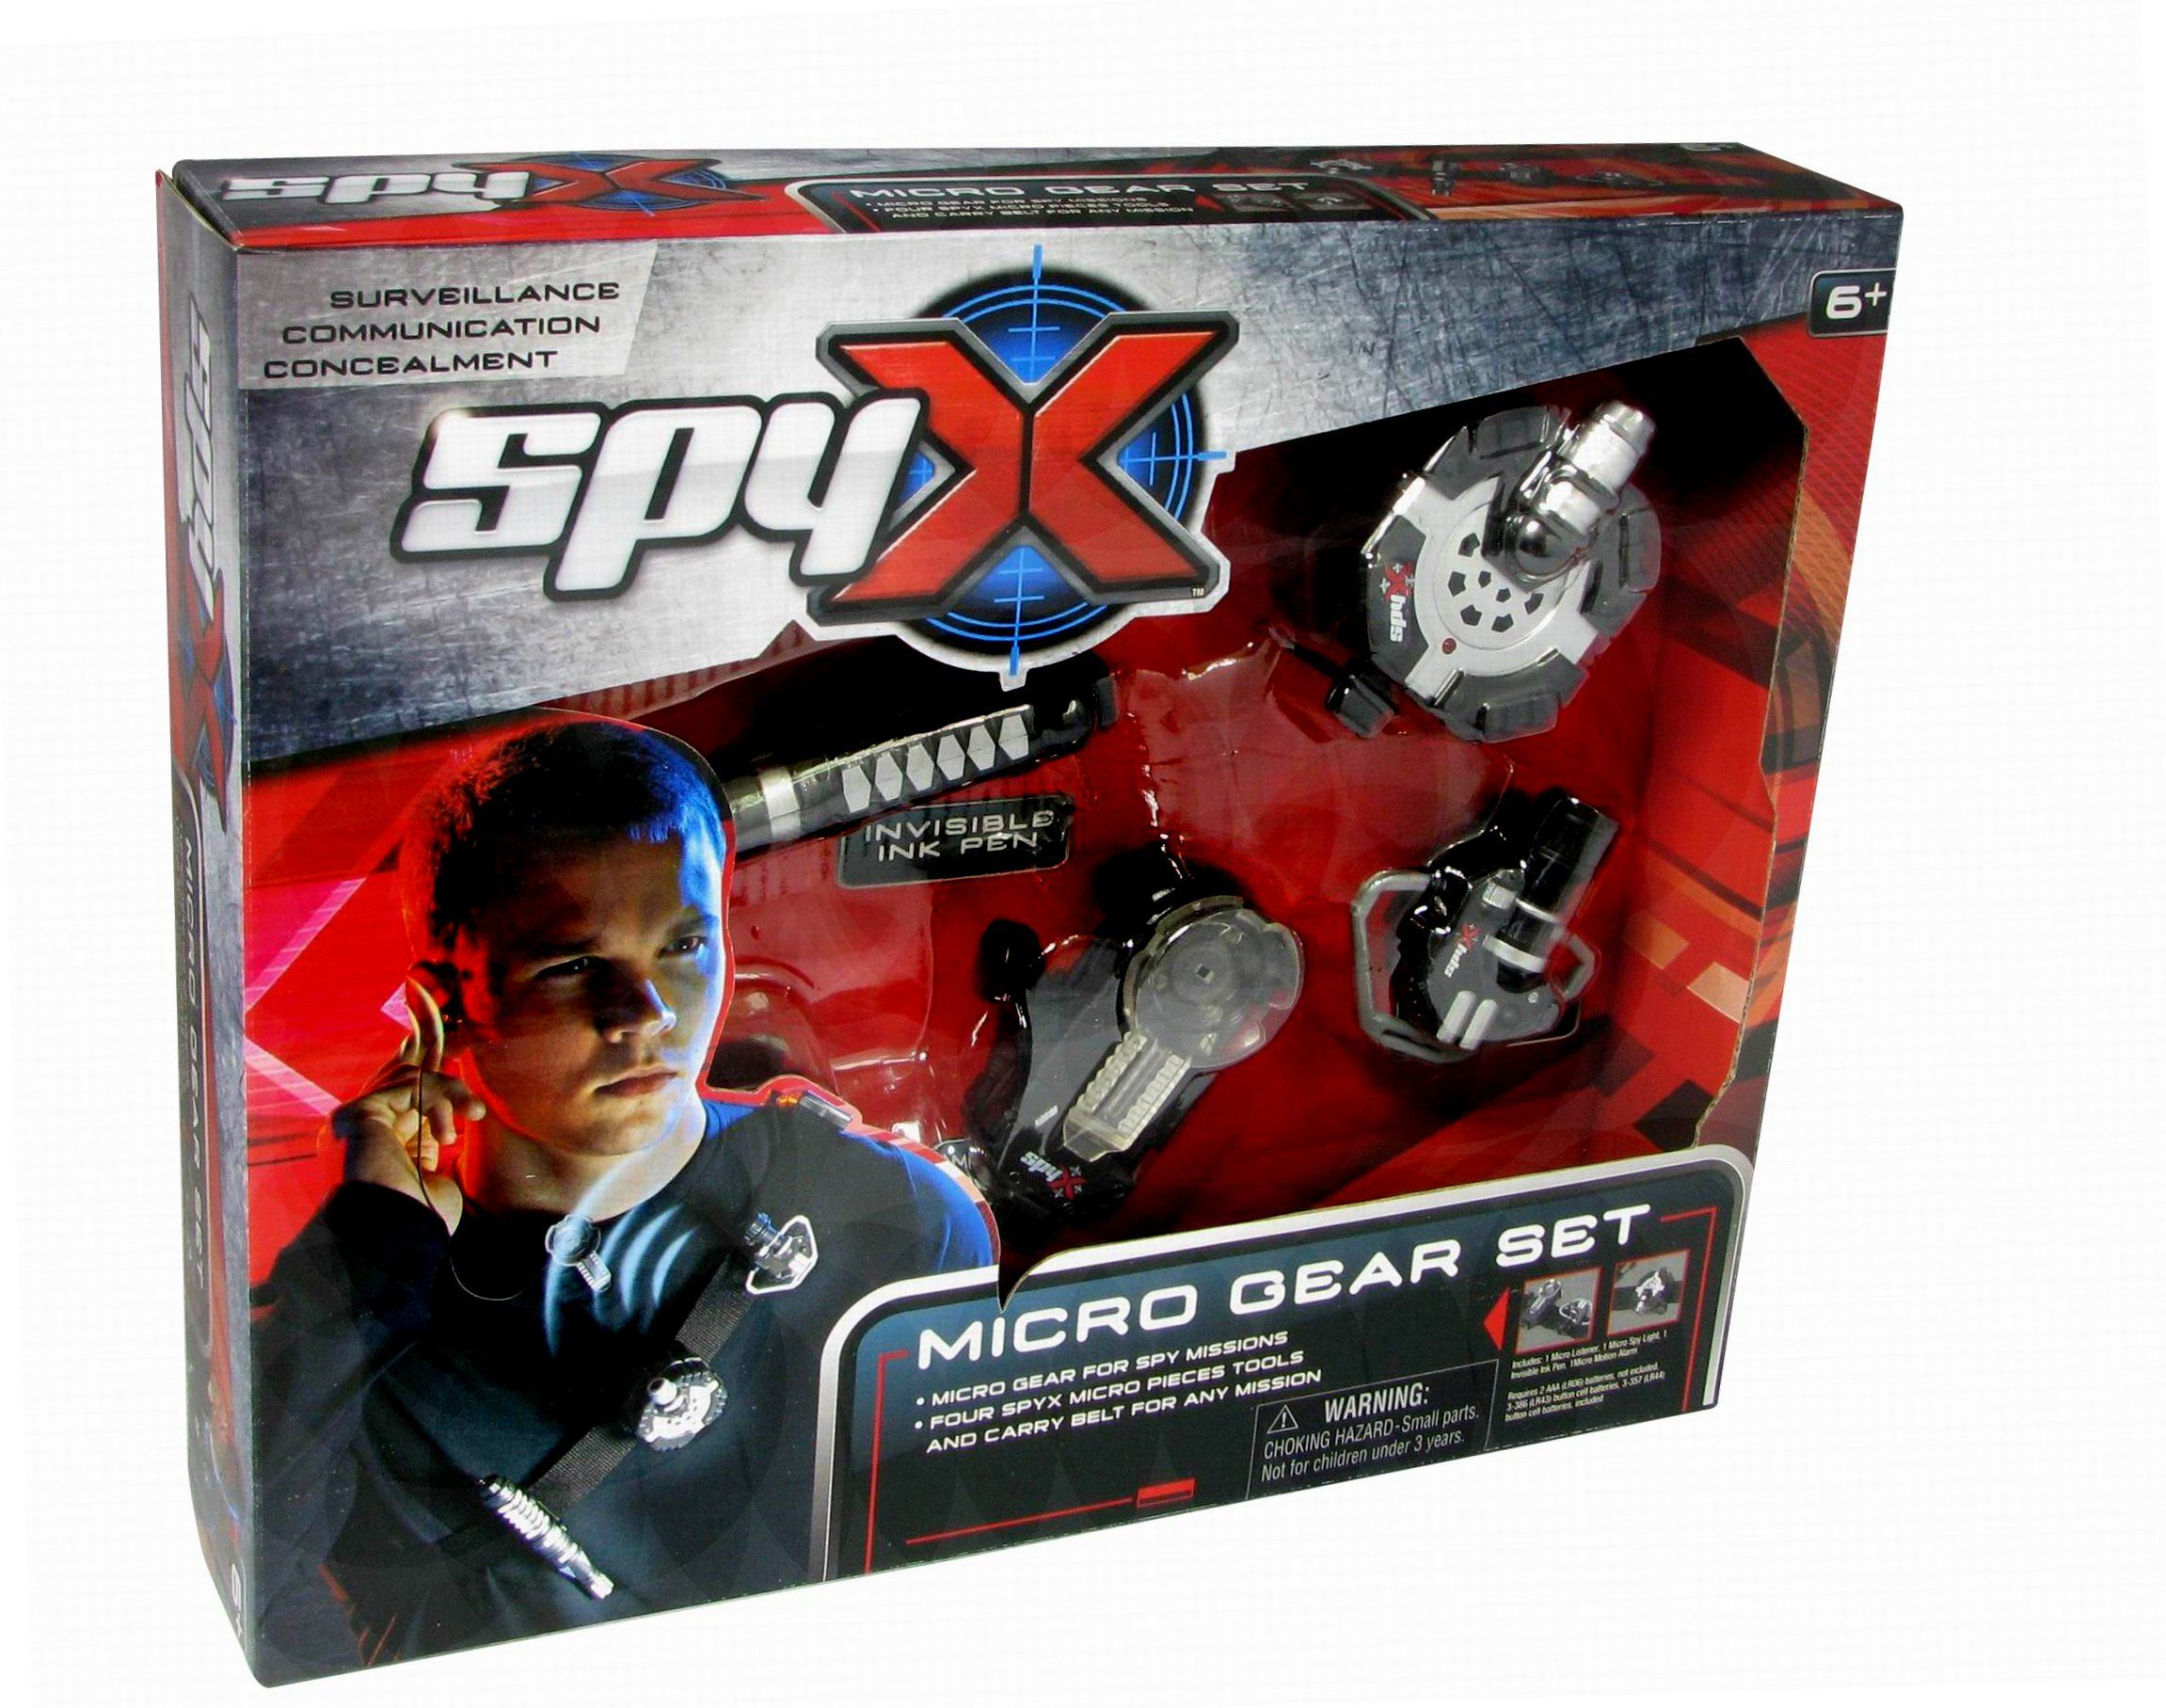 SpyX Micro Gear Set Amazon Toys & Games